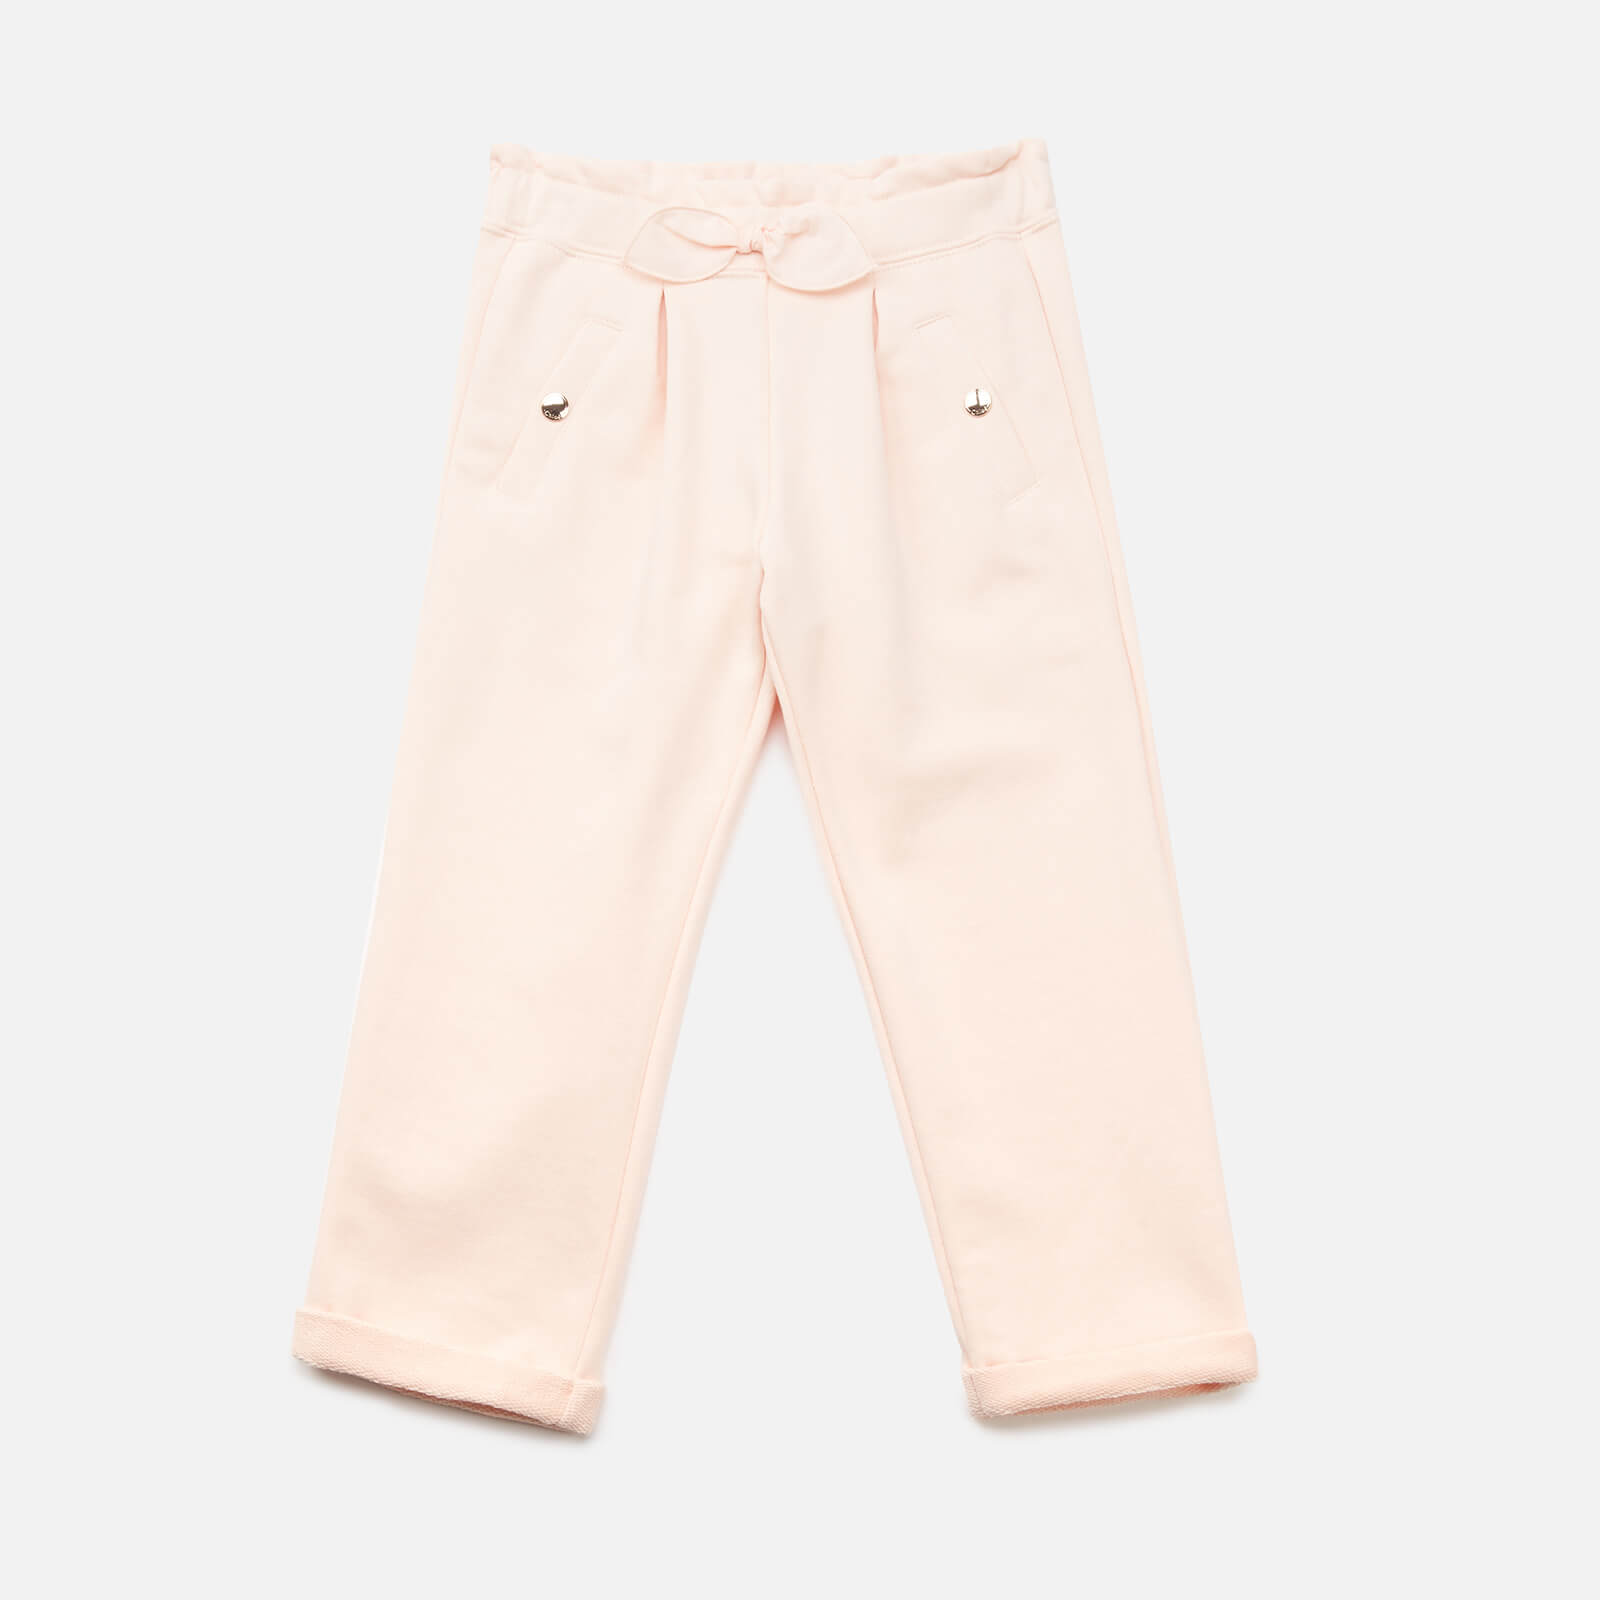 Chloe Girls' Toddlers Trousers - Pale Pink - 2 Years